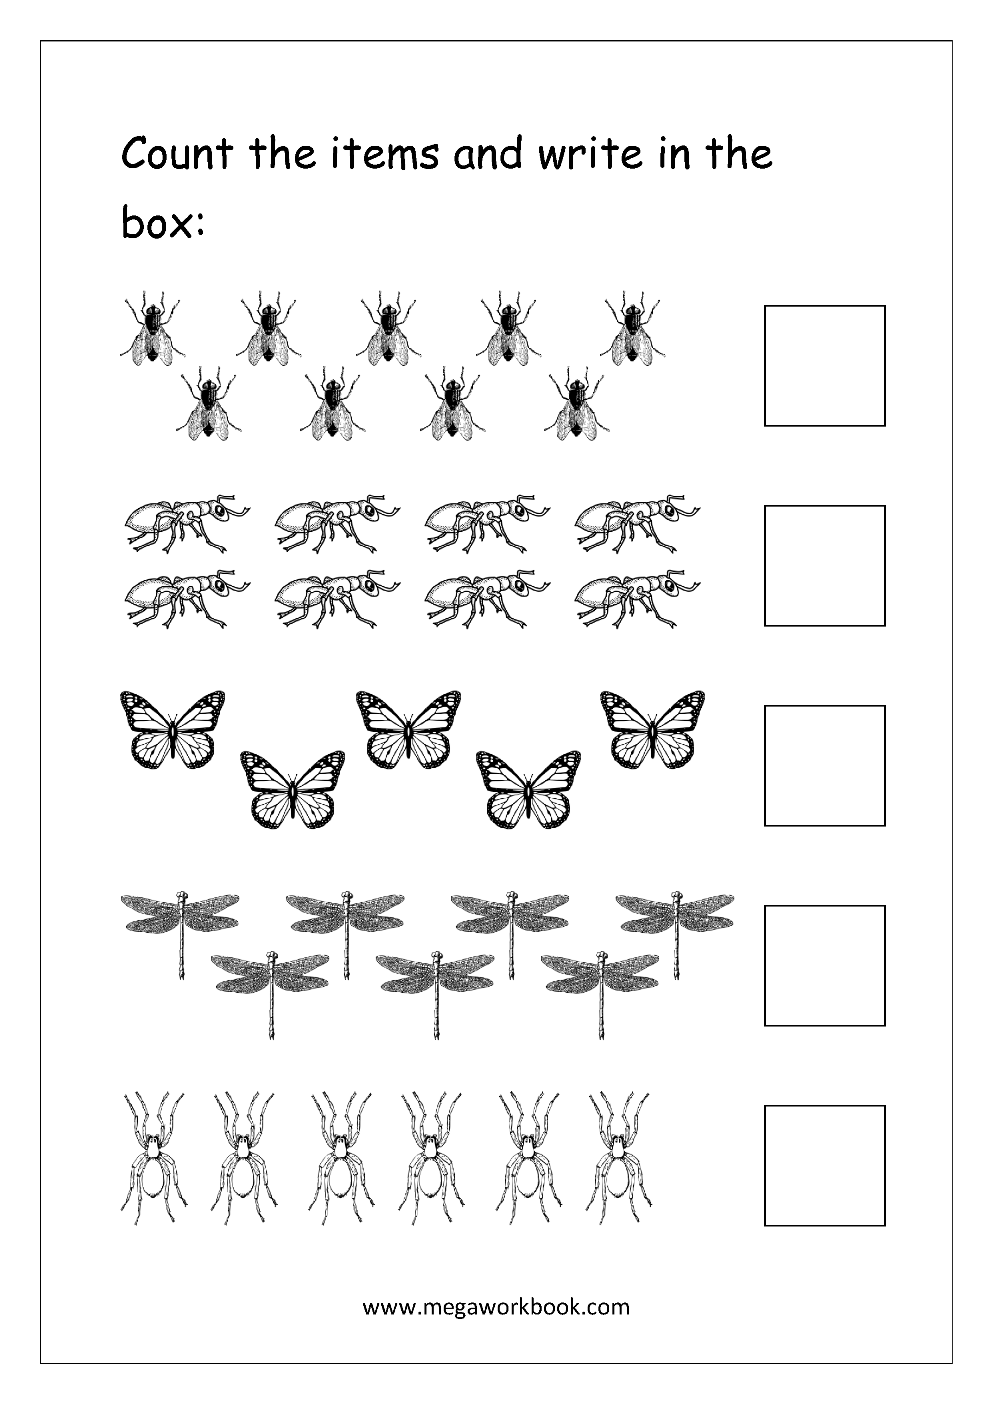 Free Printable Number Counting Worksheets - Count and ...